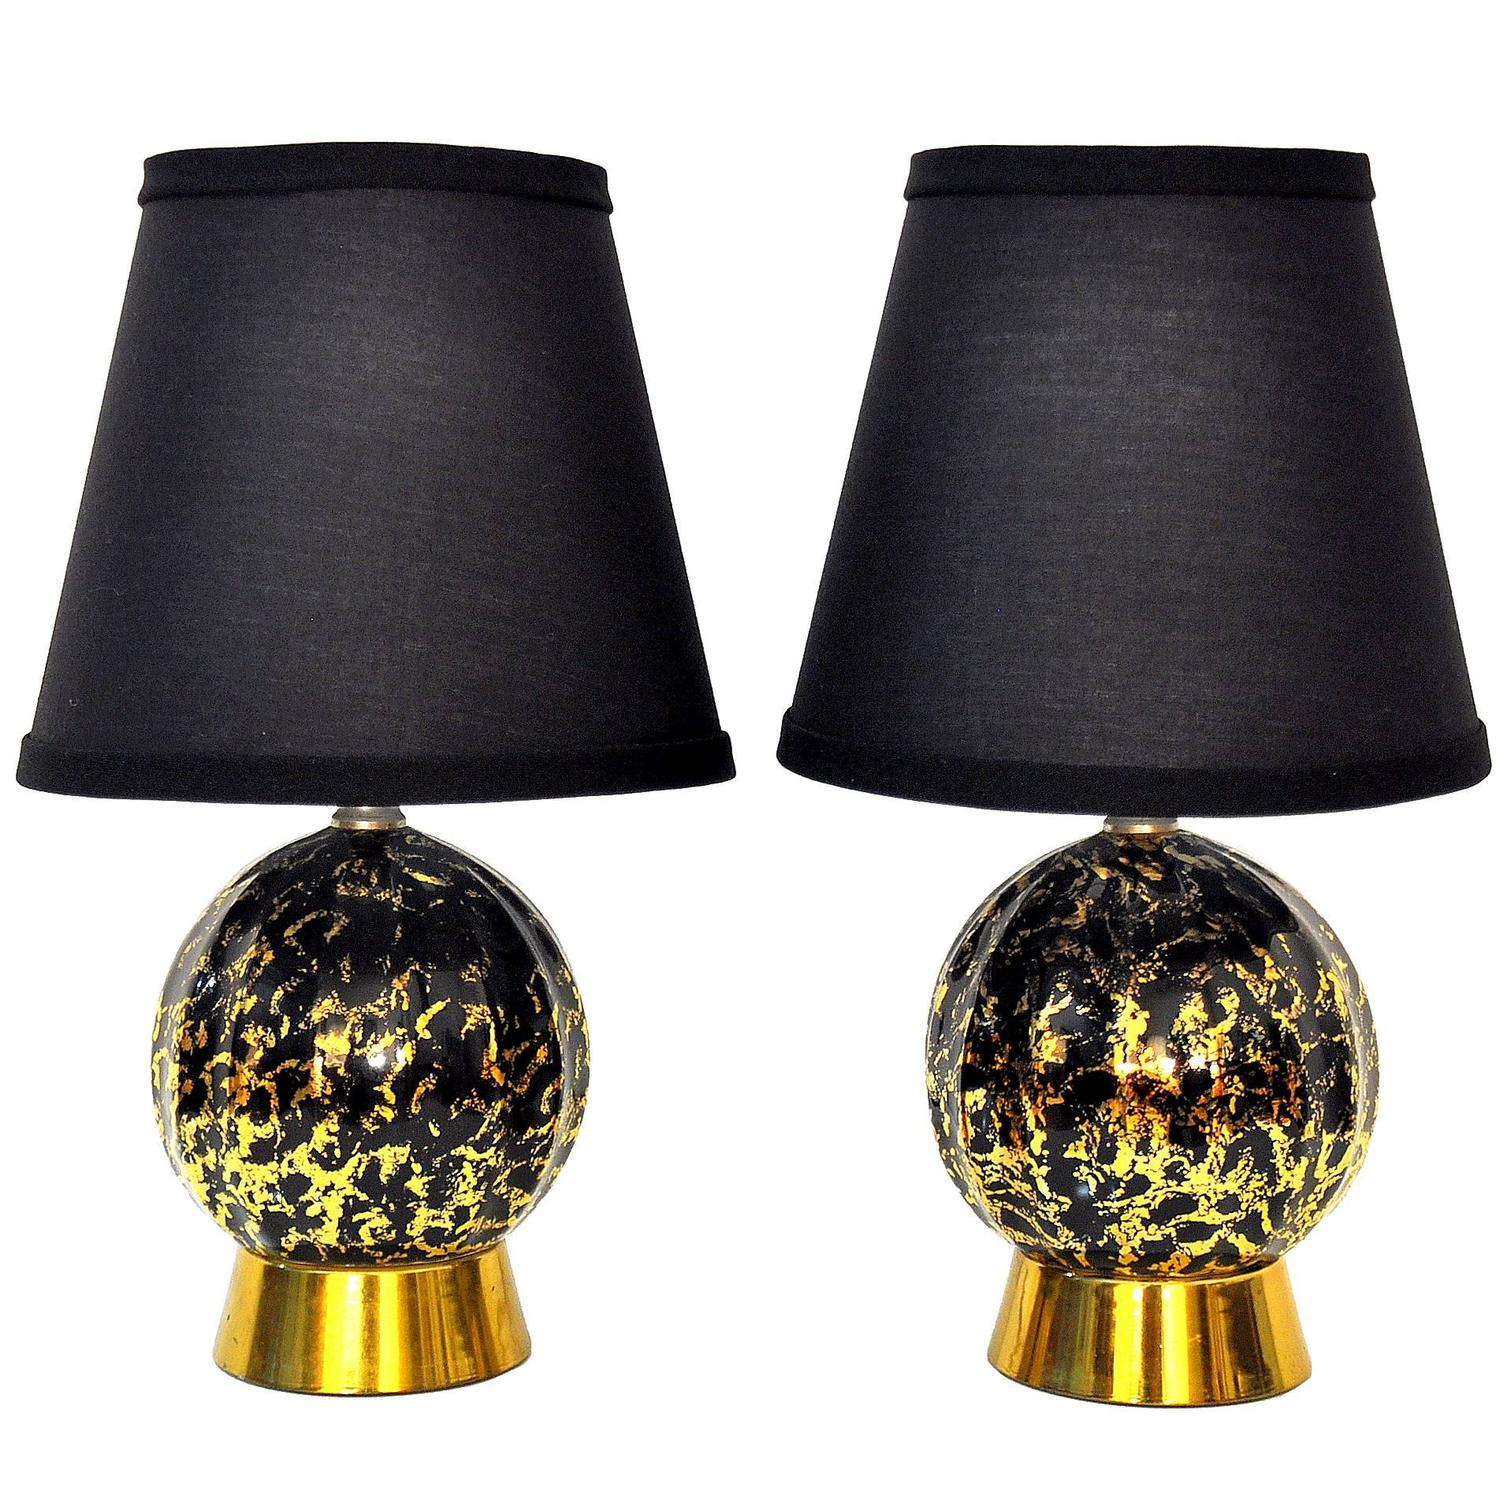 pair of hollywood regency black and gold table lamps at 1stdibs. Black Bedroom Furniture Sets. Home Design Ideas